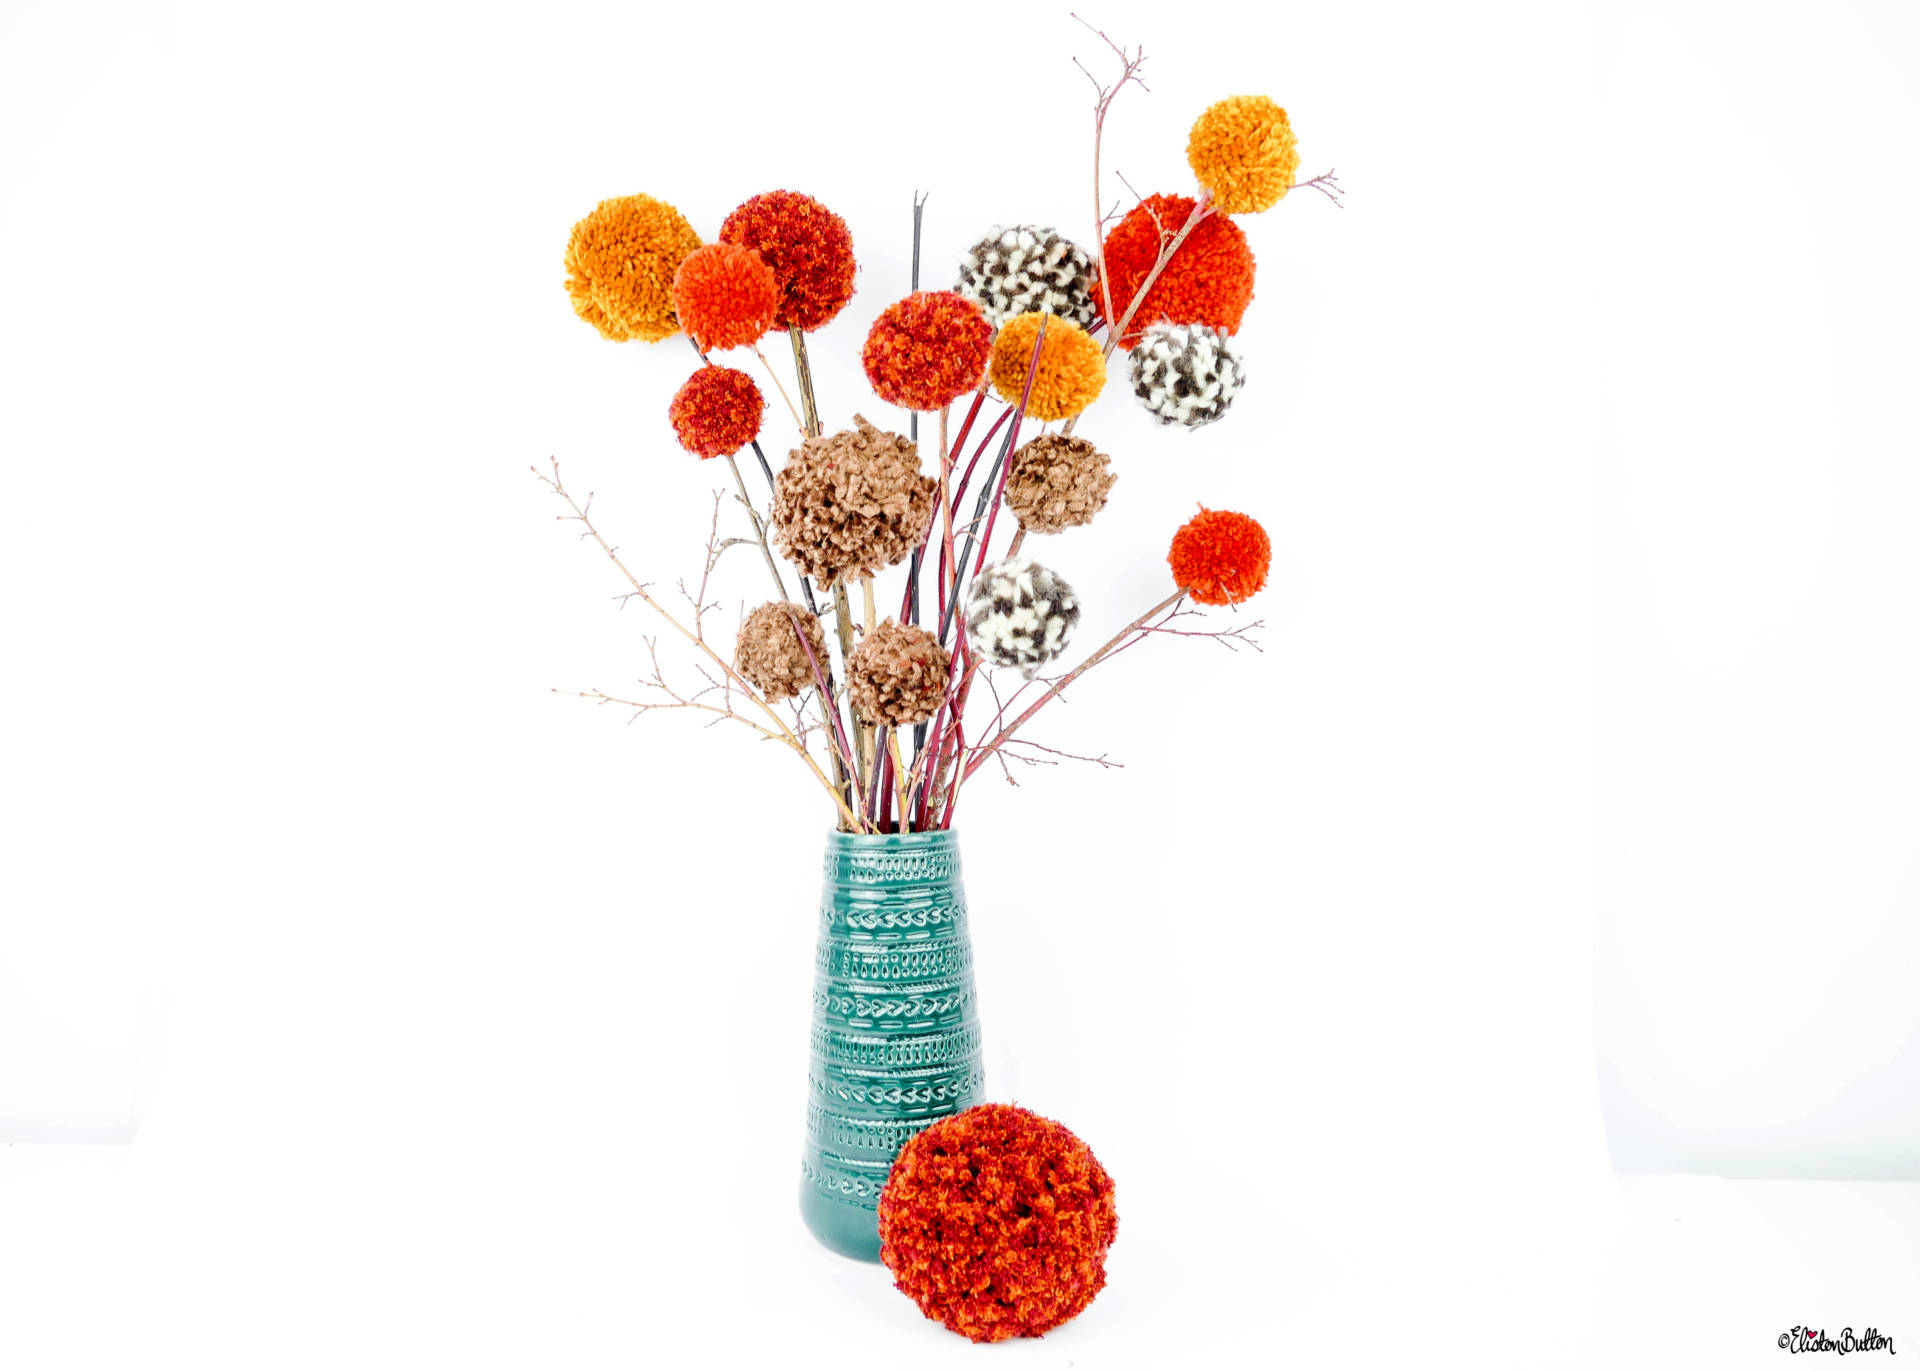 Simple Autumn Pom Pom Decor D.I.Y. Tutorial by Eliston Button - The End Result - Tutorial Tuesday - Simple Autumn Pom Pom Decor at www.elistonbutton.com - Eliston Button - That Crafty Kid – Art, Design, Craft & Adventure.